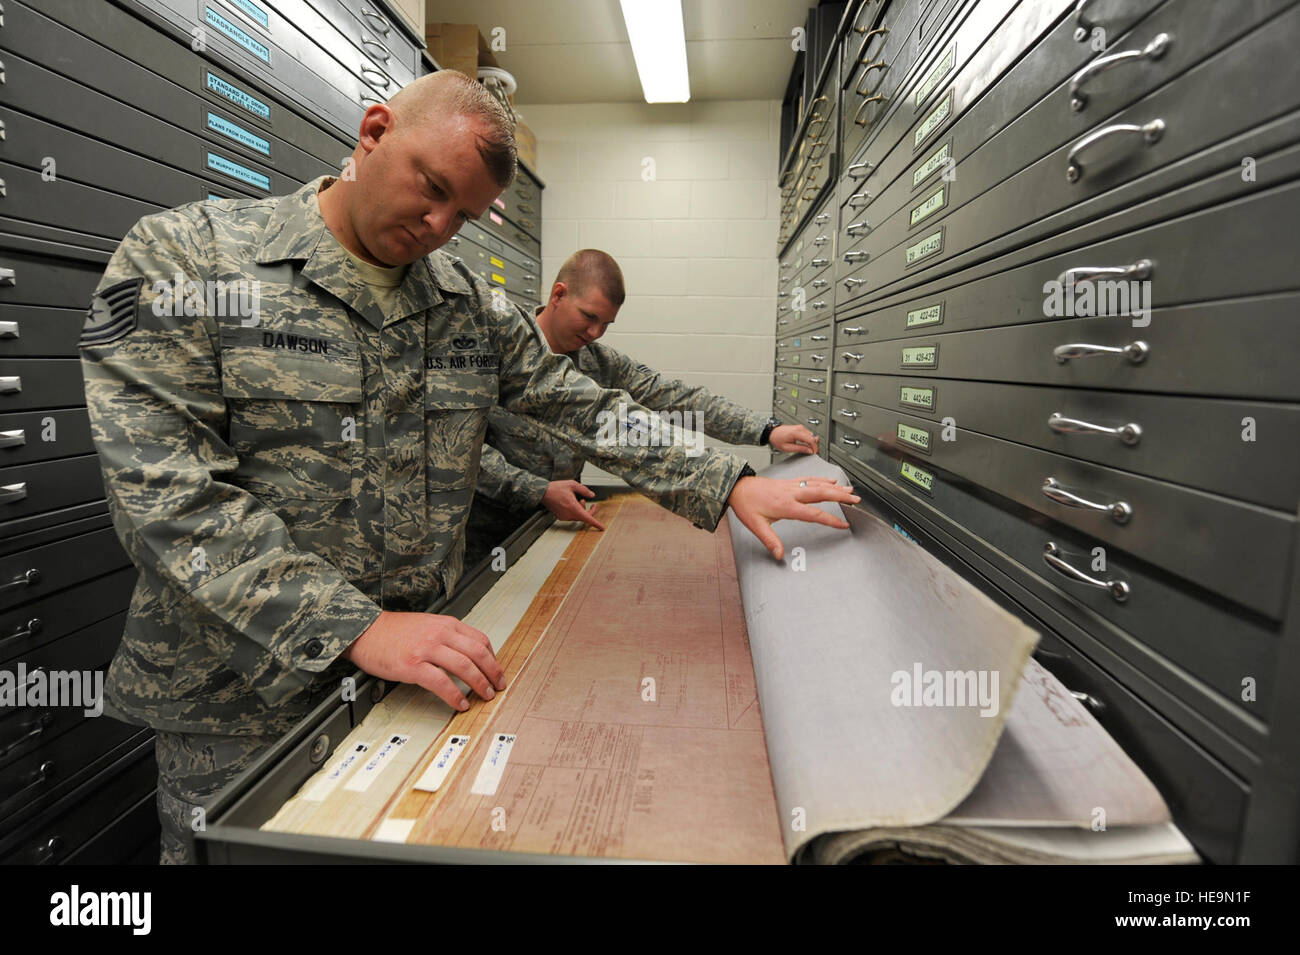 Tech. Sgt. Jason Dawson 5th Civil Engineering Squadron, non-commissioned officer in charge of drafting reviews historical - Stock Image